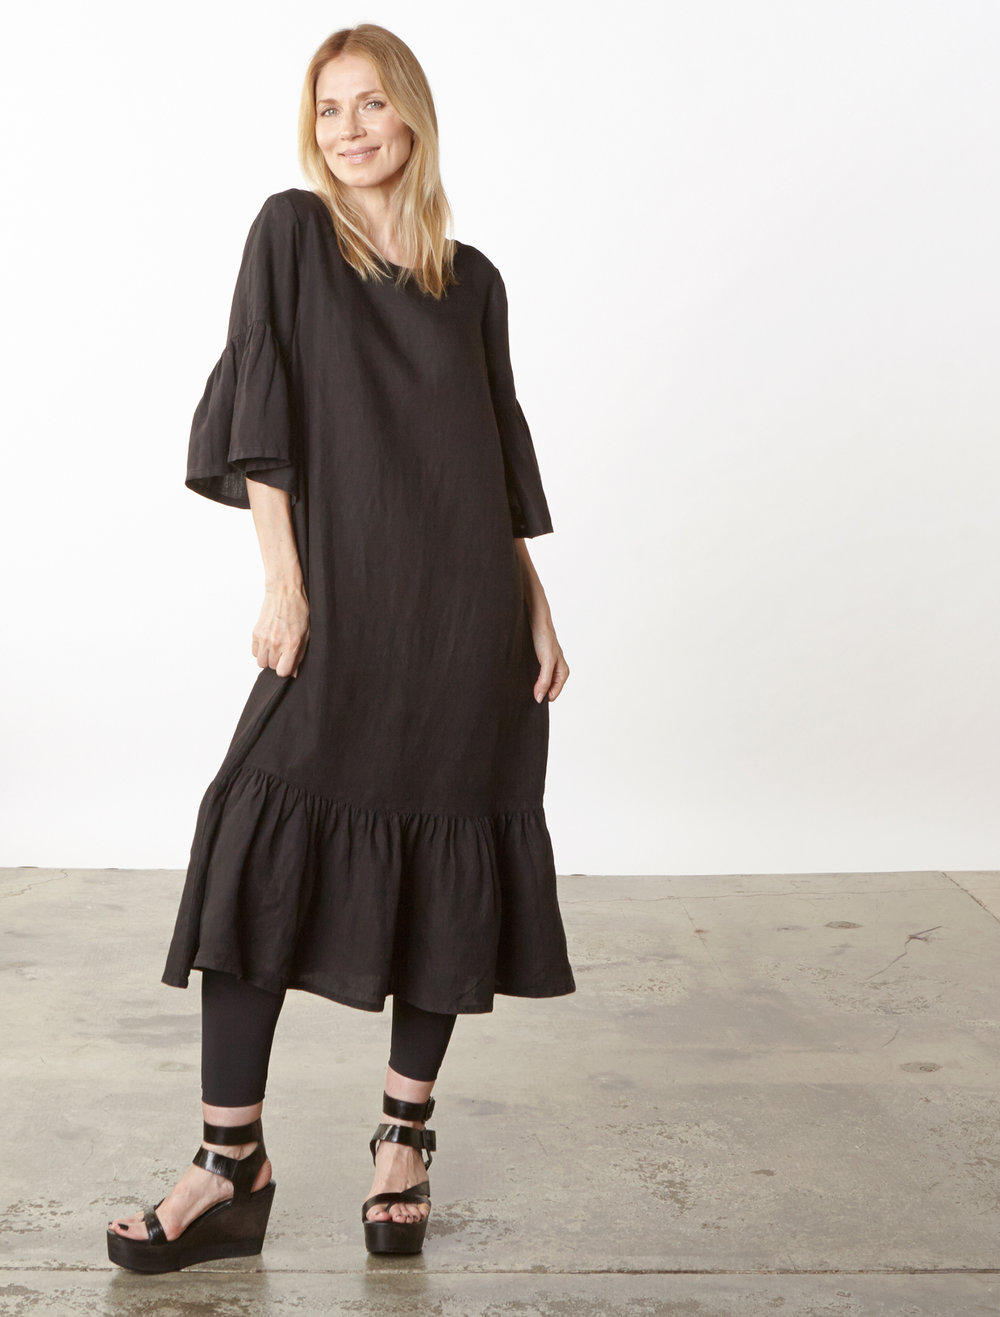 Seraphina Dress in Black Light Linen